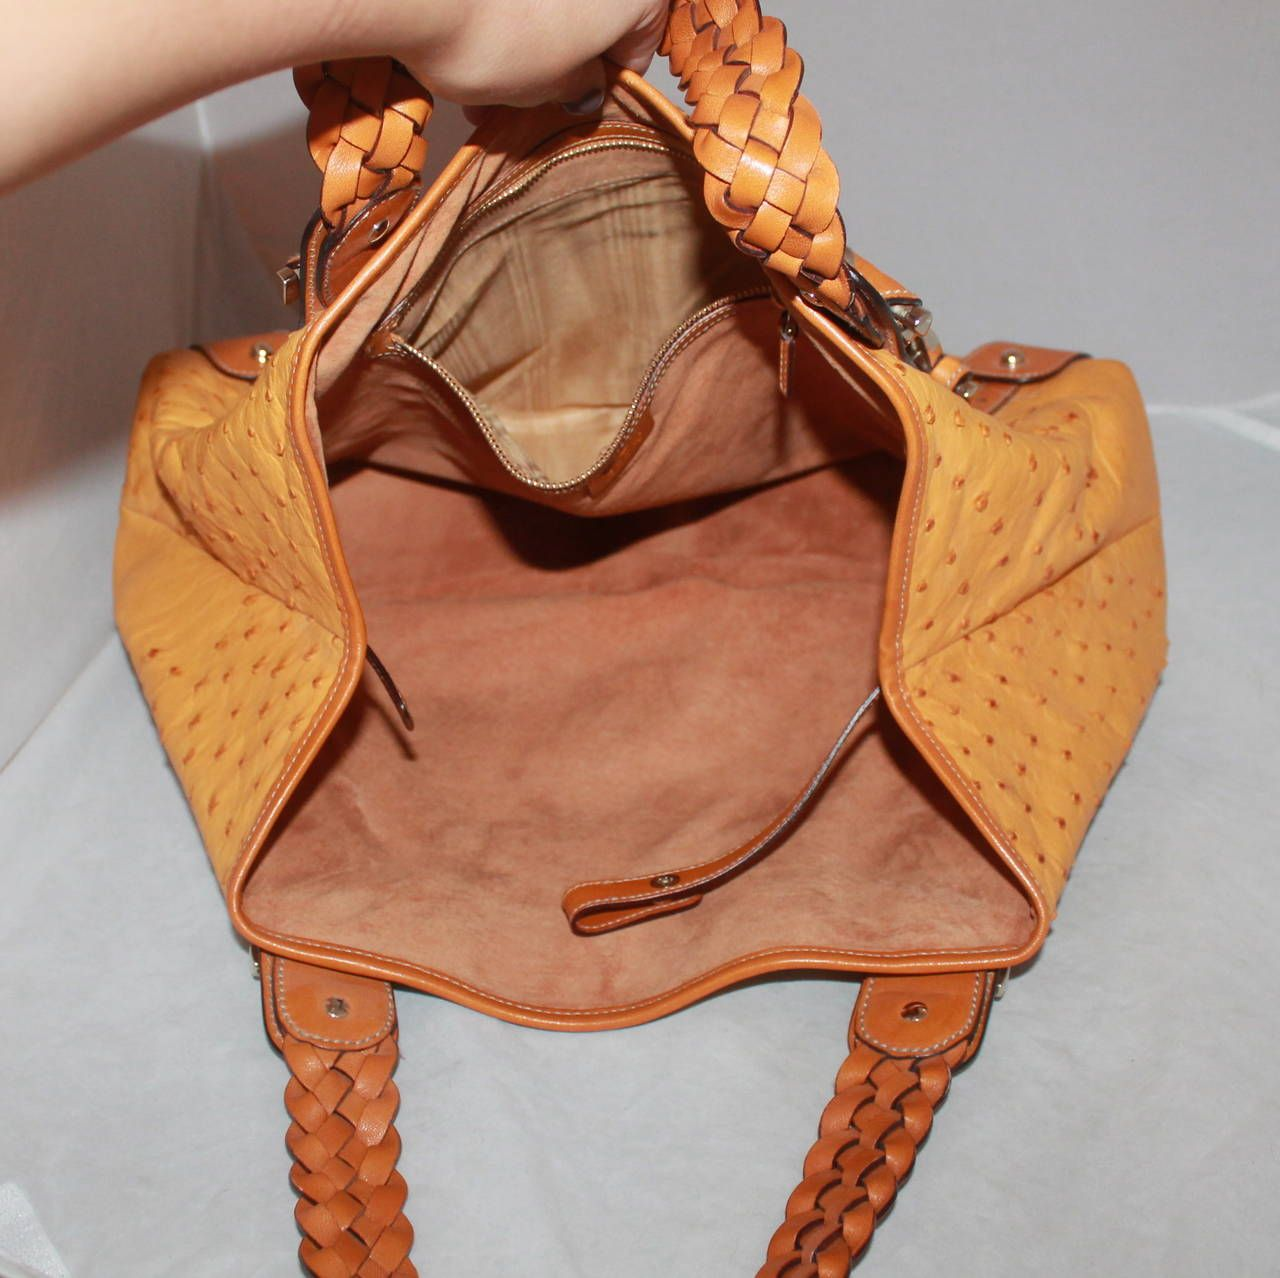 ec9988776c59 Gucci Mustard Ostrich and Luggage Braided Leather Shoulder Bag For Sale at  1stdibs